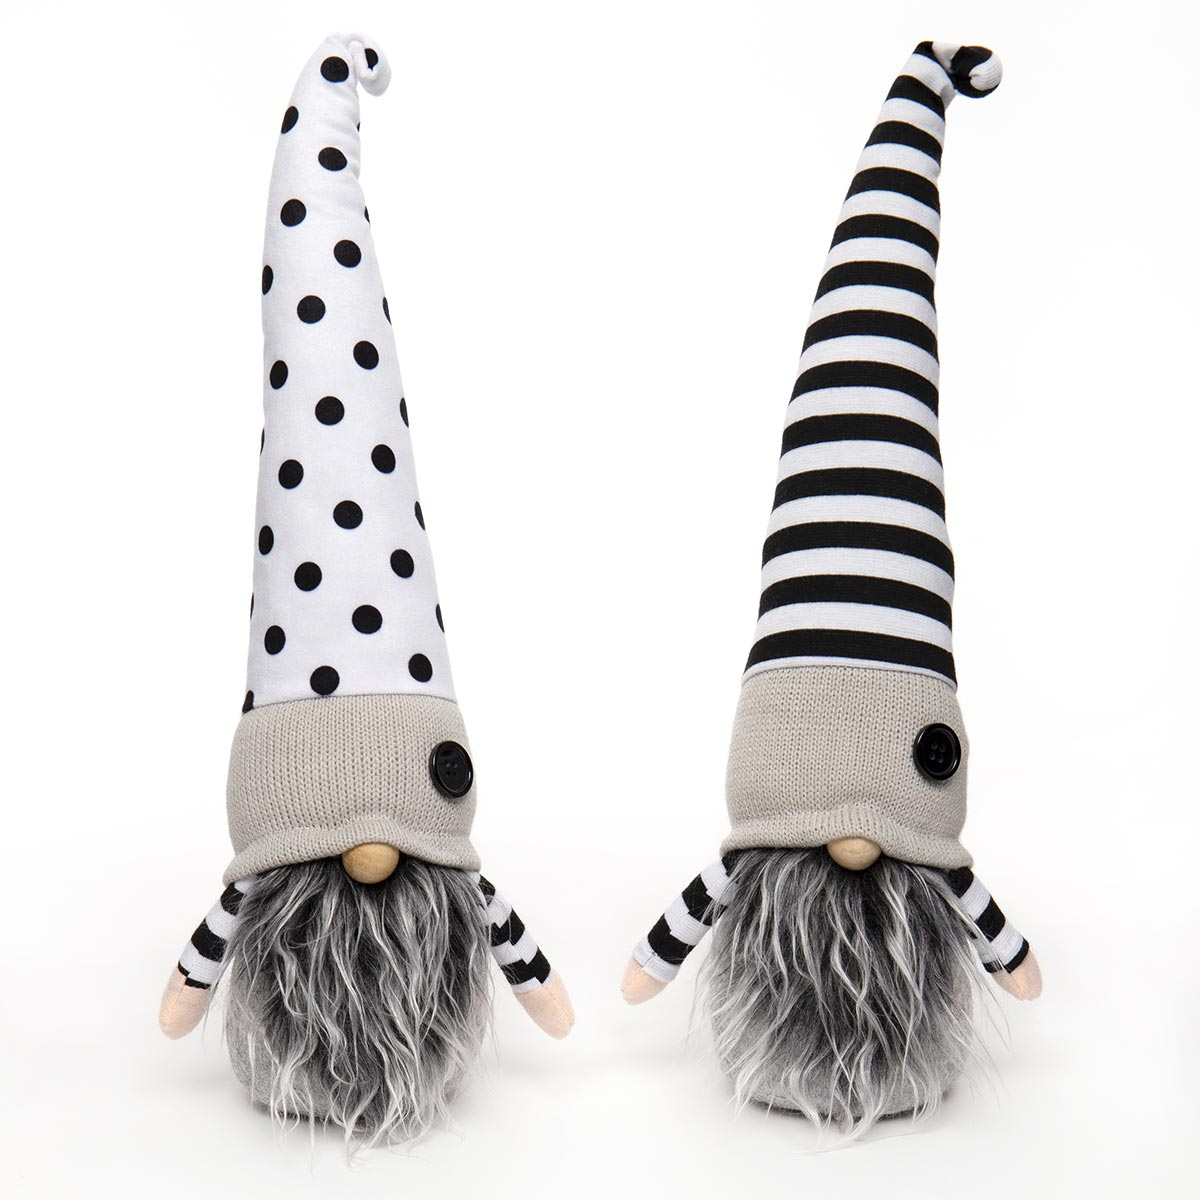 BJORN BOYS GNOME WITH BLACK/WHITE HAT